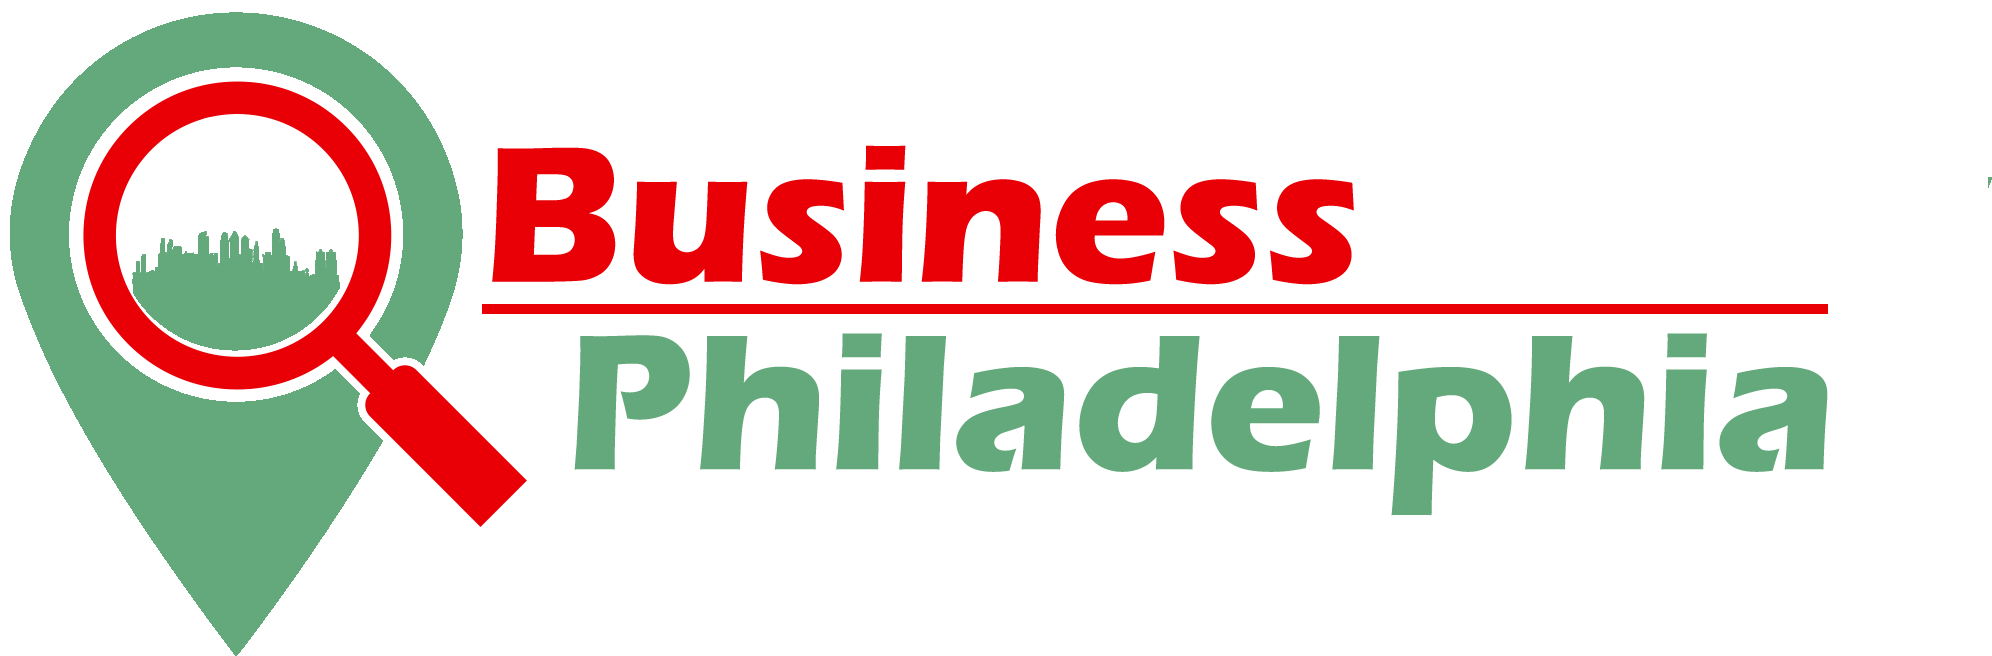 Business In Philadelphia | Find and Review local Philadelphia Businesses|